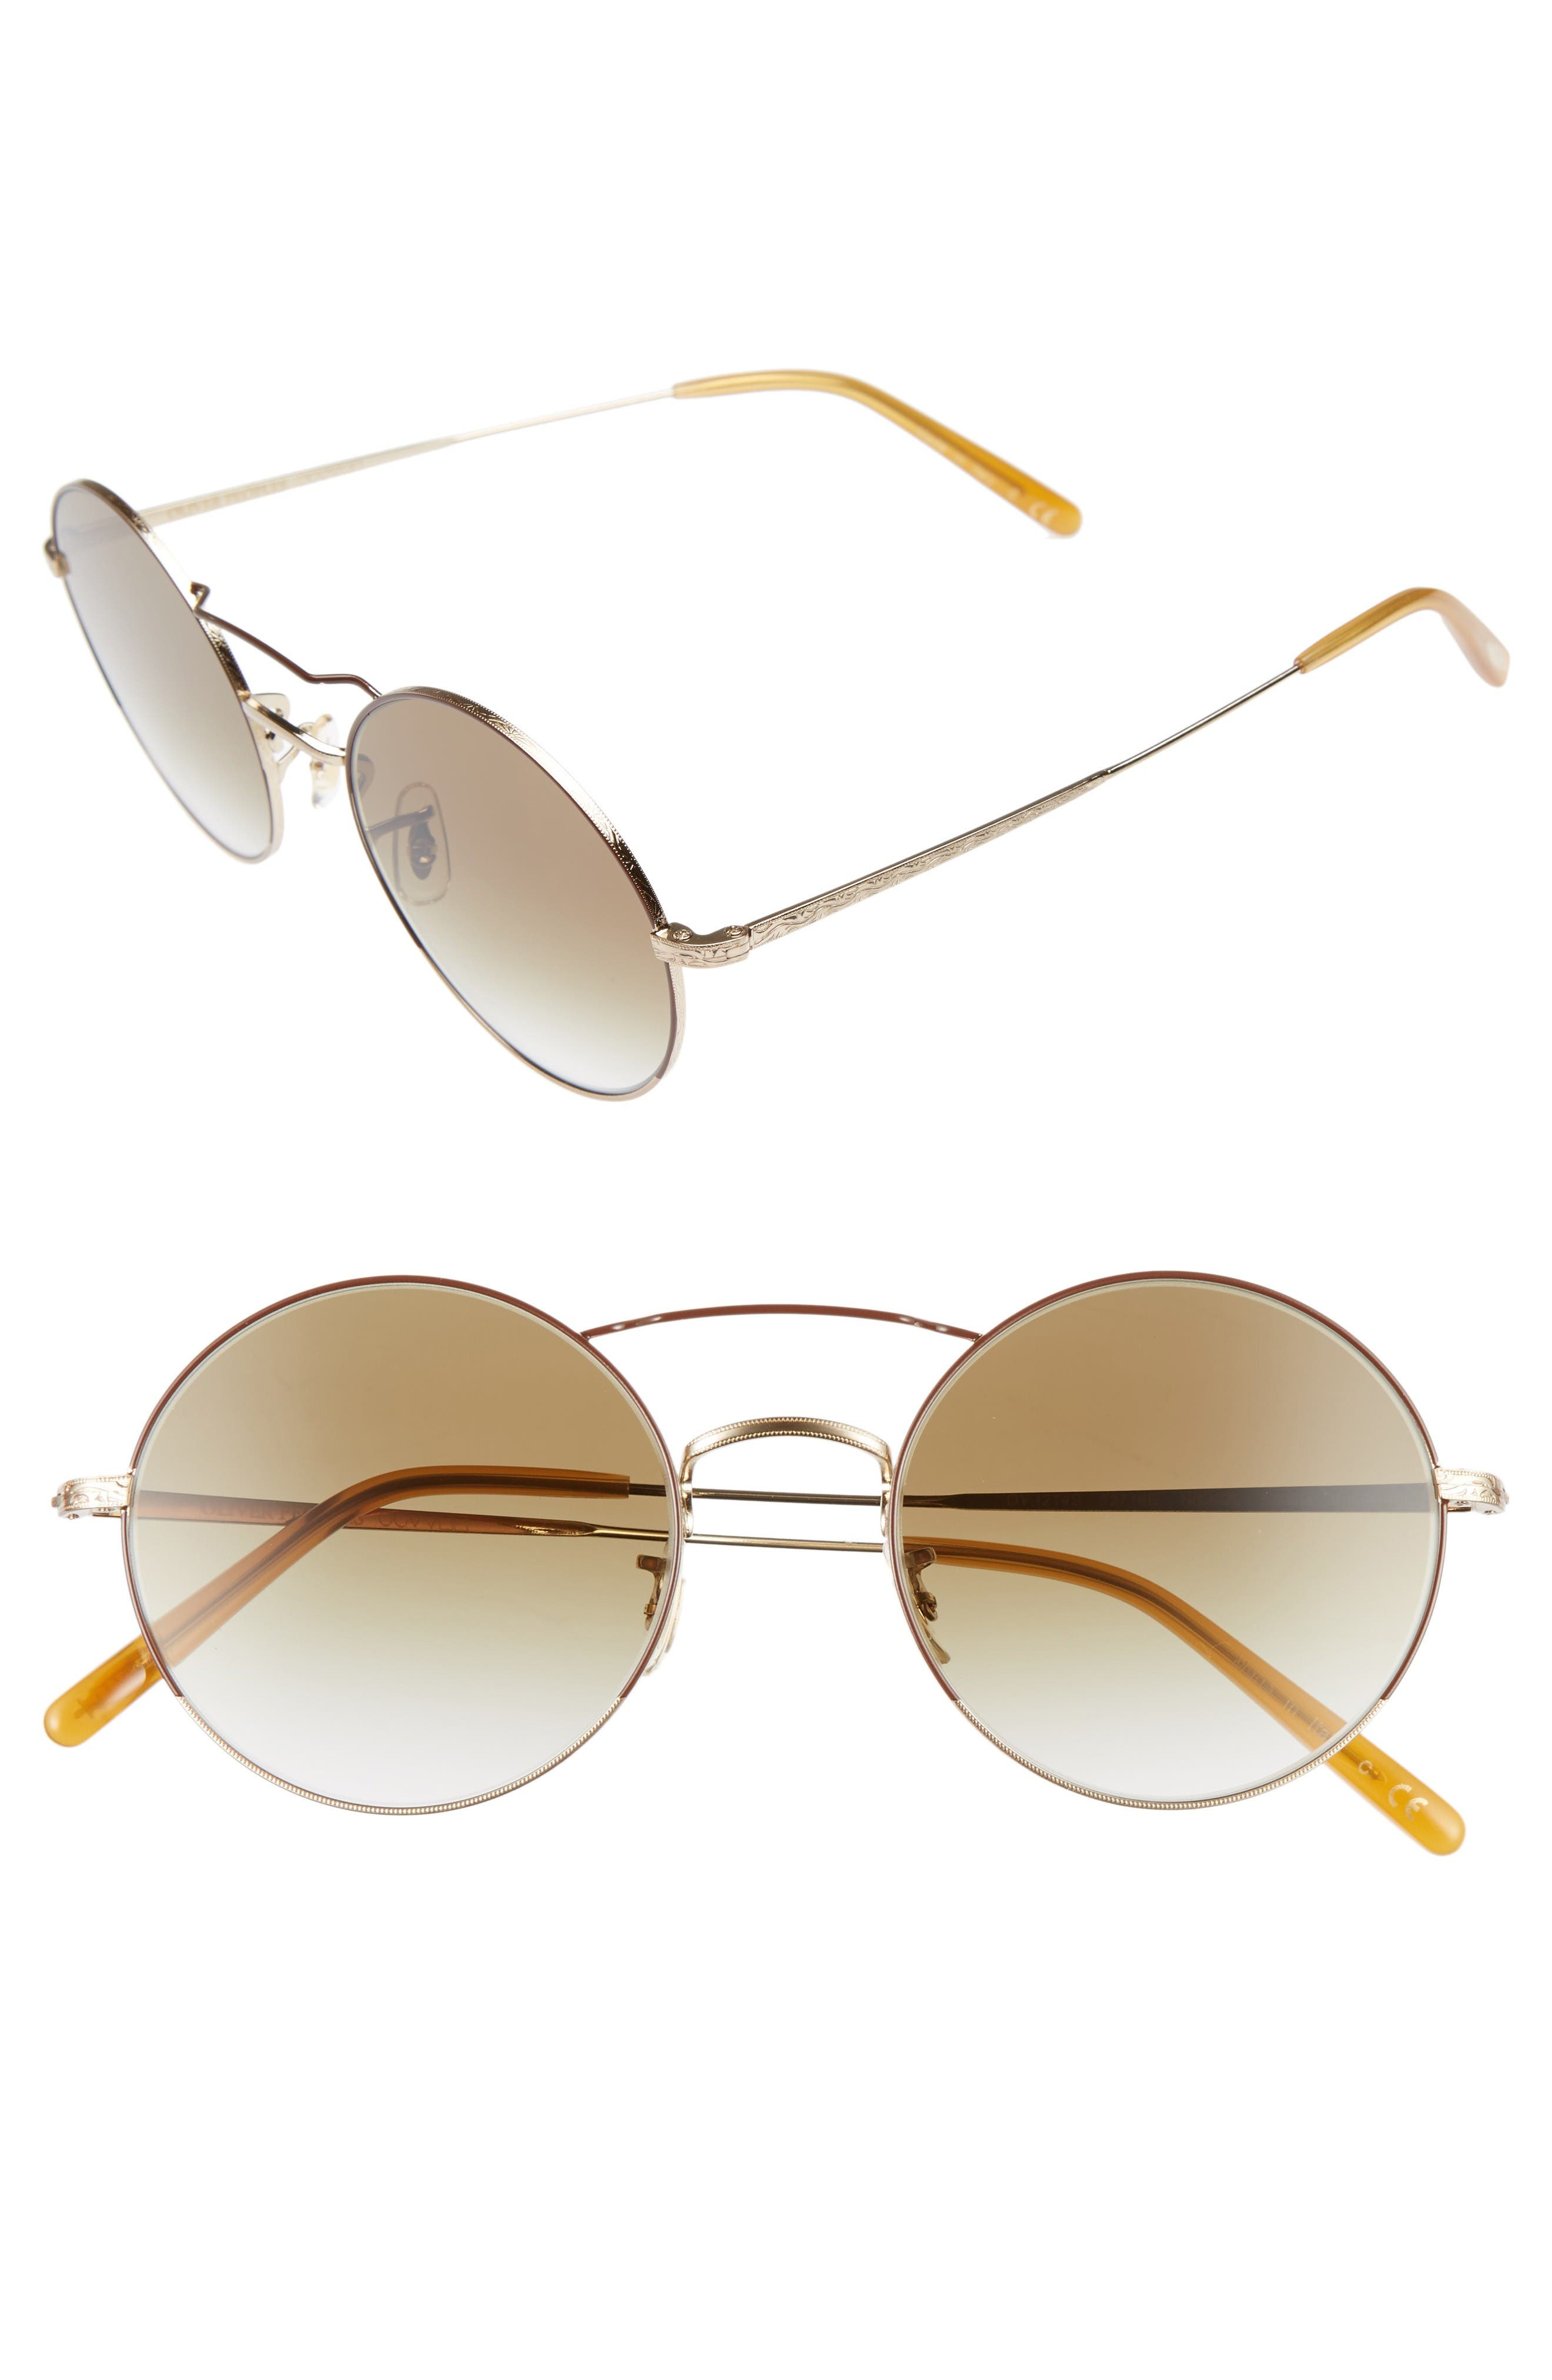 Main Image - Oliver Peoples Nickol 53mm Round Sunglasses